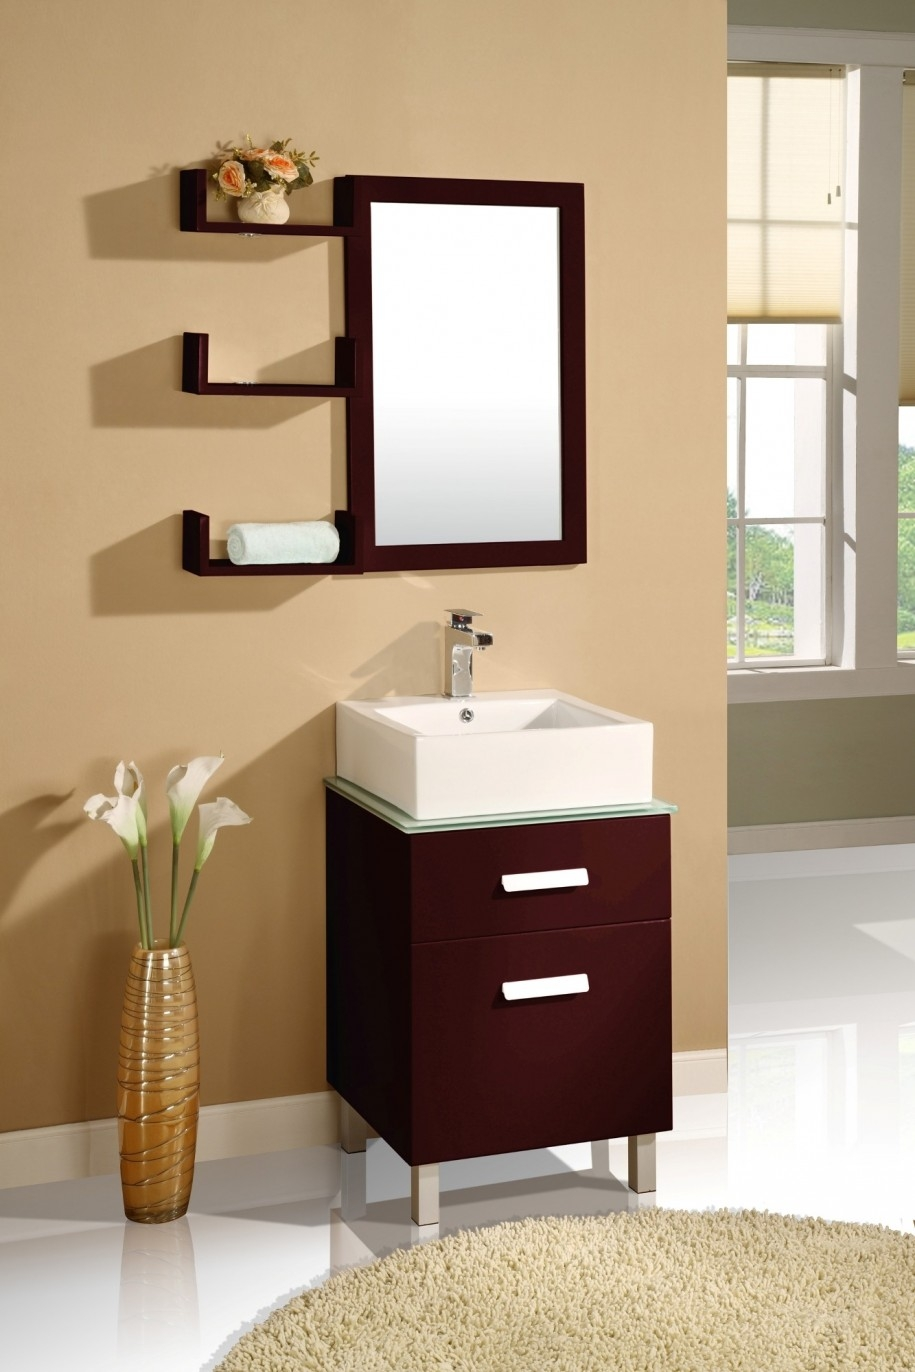 Permalink to Wood Bathroom Mirror With Shelf